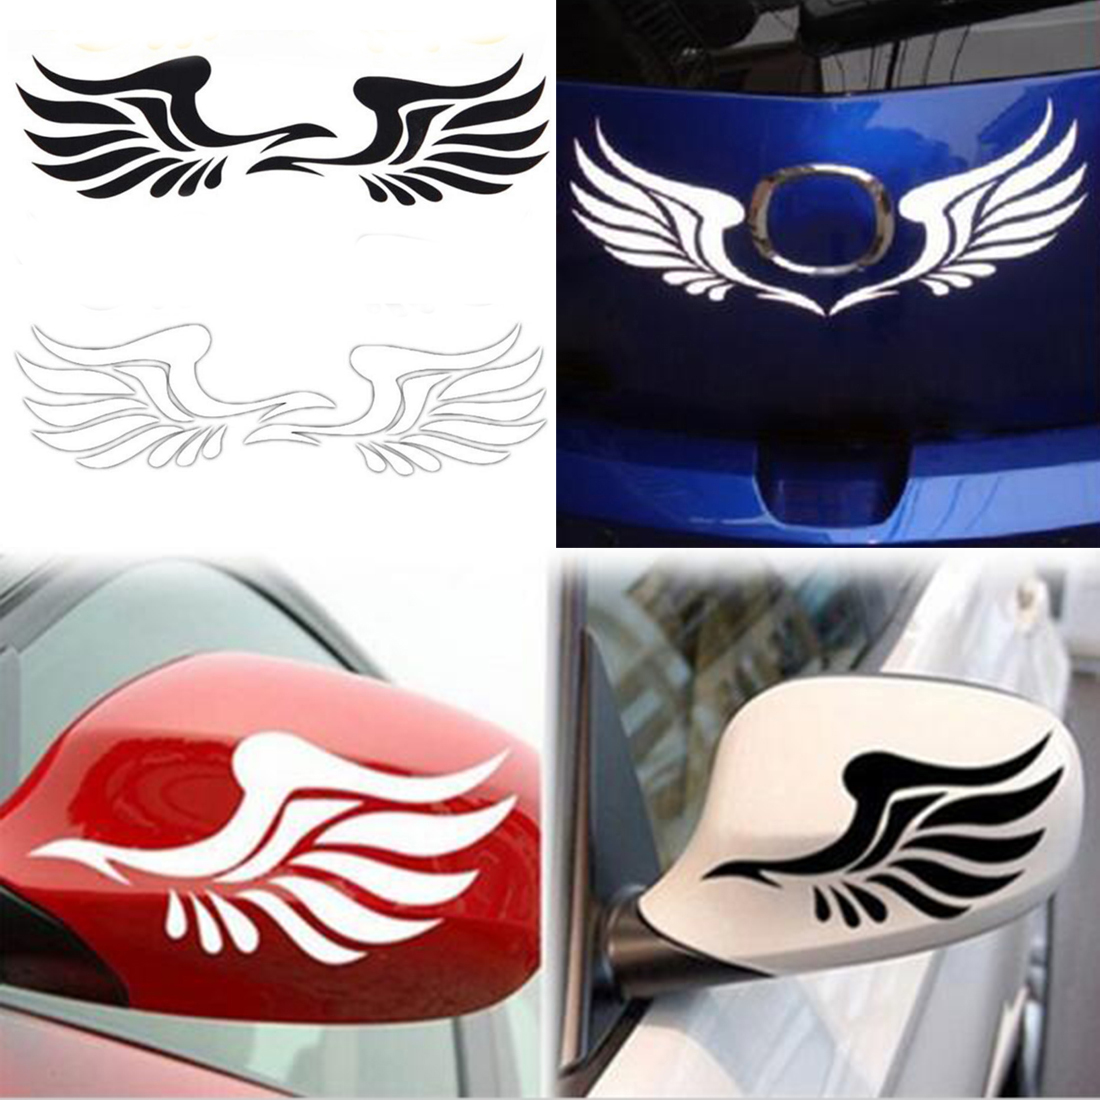 2pcs New Design Personality Fire Wings Side Mirror Car  Styling Stickers Decorative Stickers Free Shipping remote control charging helicopter